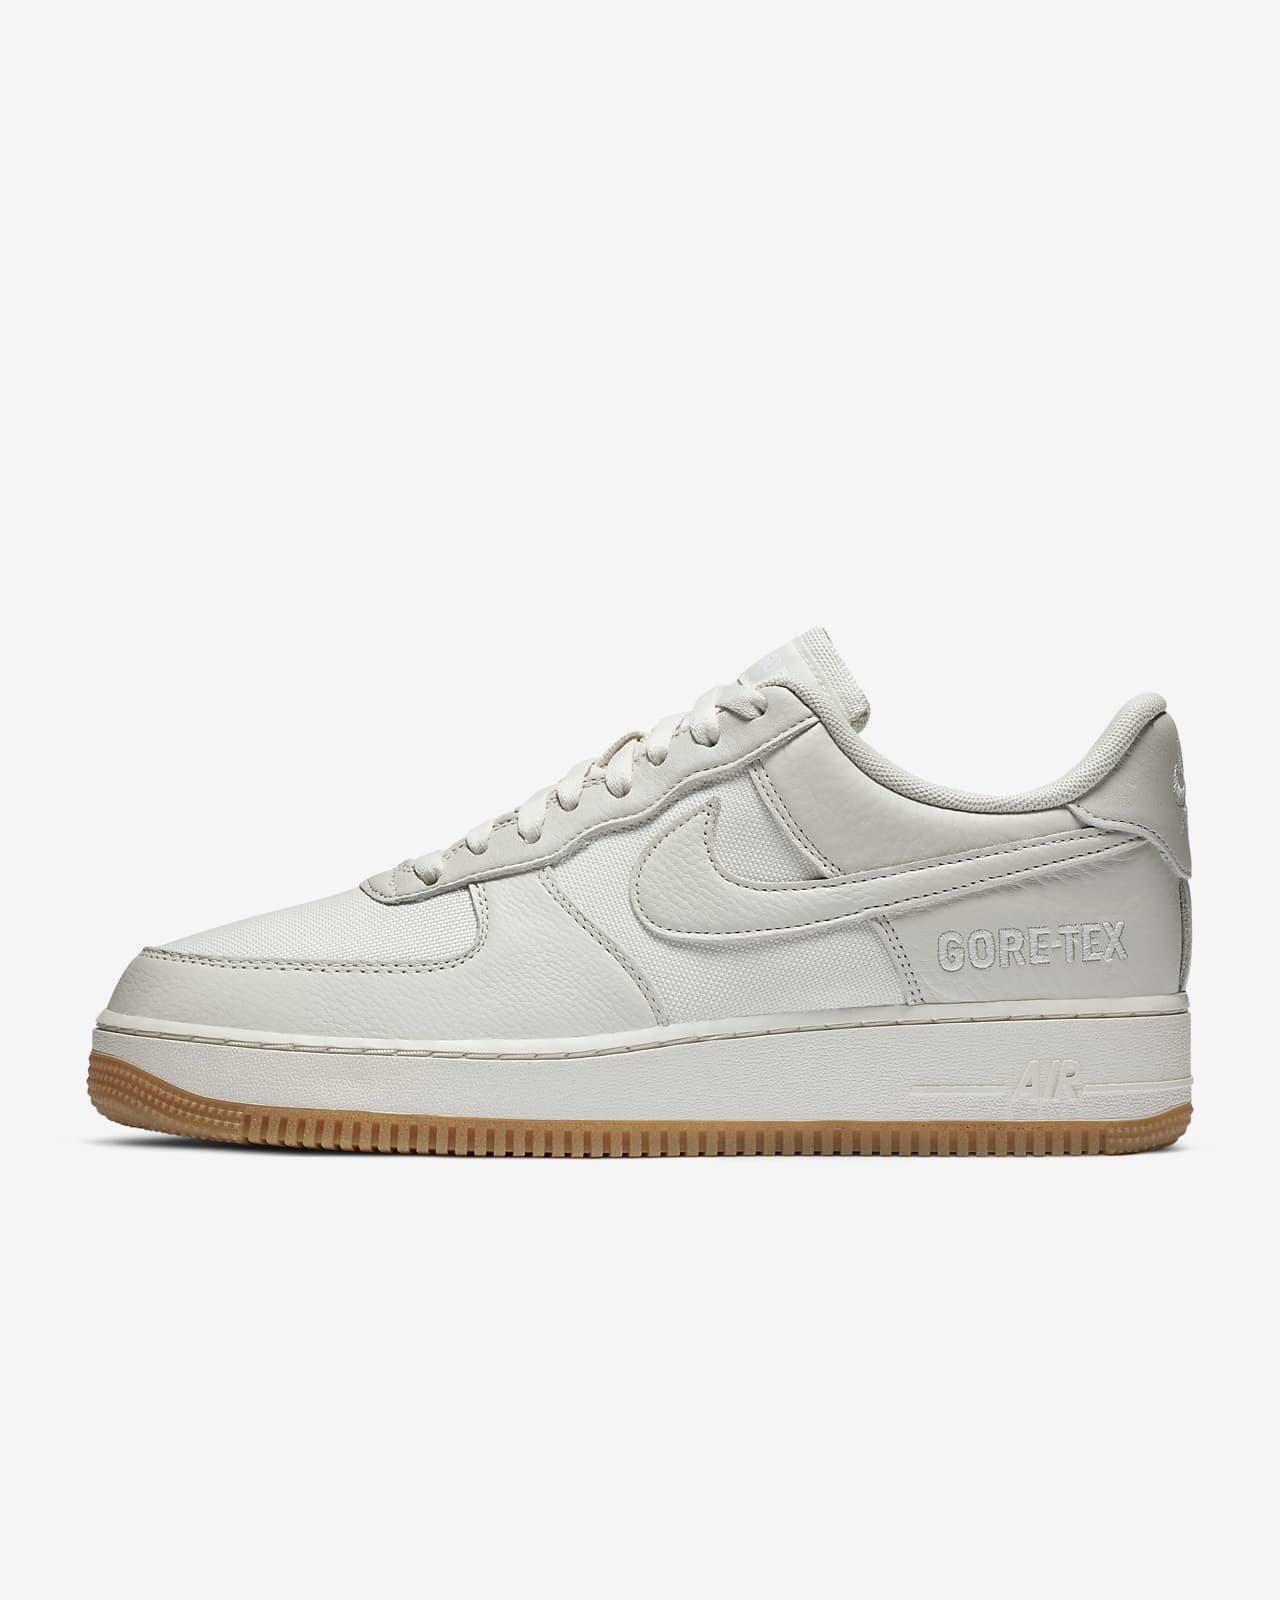 Chaussure Nike Air Force 1 Low GORE-TEX pour Homme